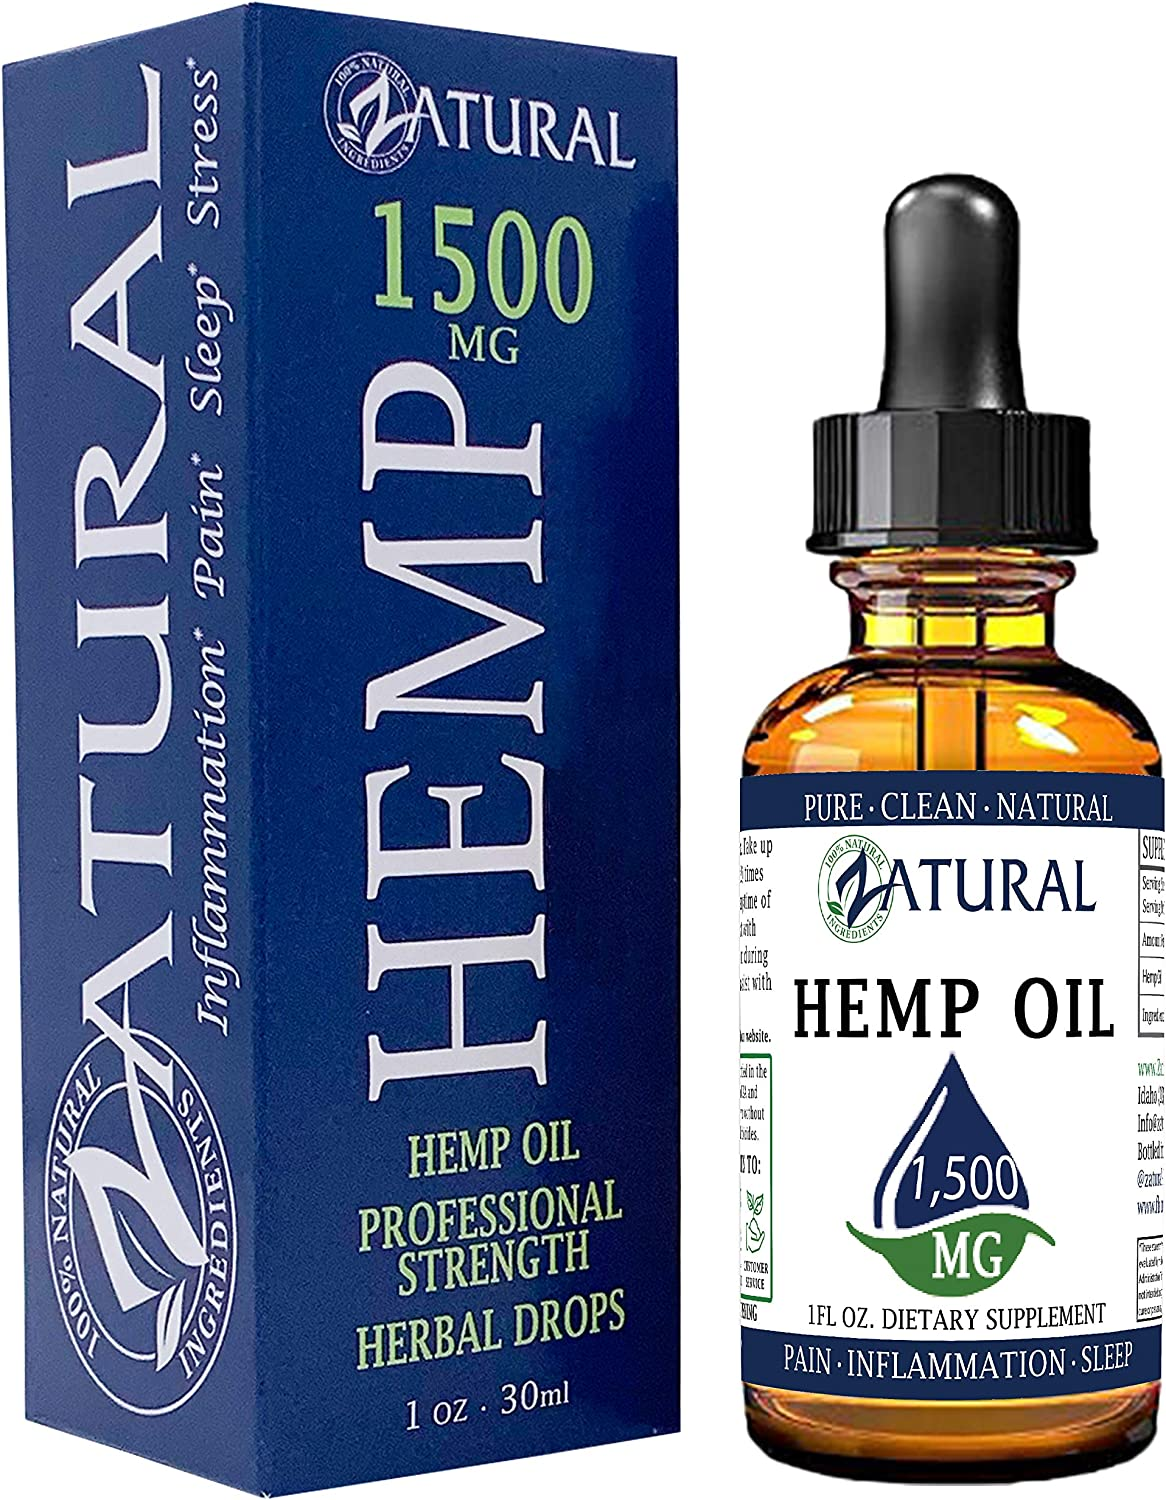 1,500mg Zatural Hemp Oil Drops: Hemp Seed Oil for Pain Relief, Anxiety, Stress, Relaxation, Better Sleep and Mood – Natural, Anti Inflammatory and Immune Support. Rich in Omega 3 & 6 (1,500mg Natural)